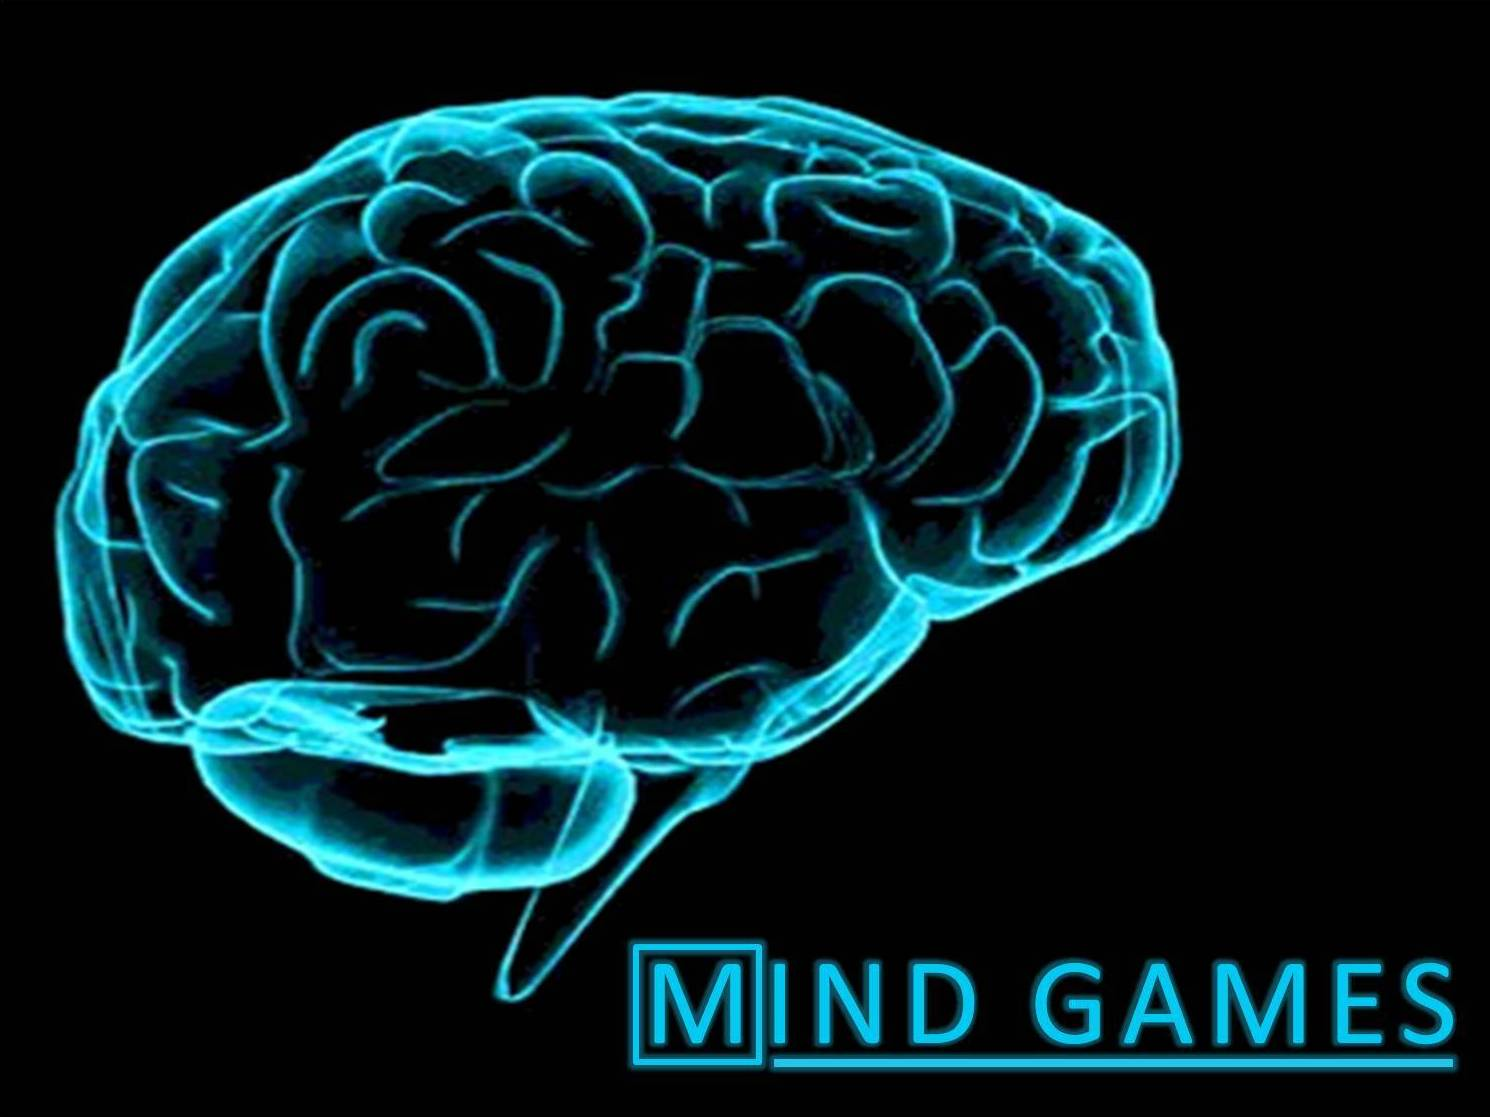 http://scinotions.com/wp-content/uploads/2014/01/mind-games.jpg